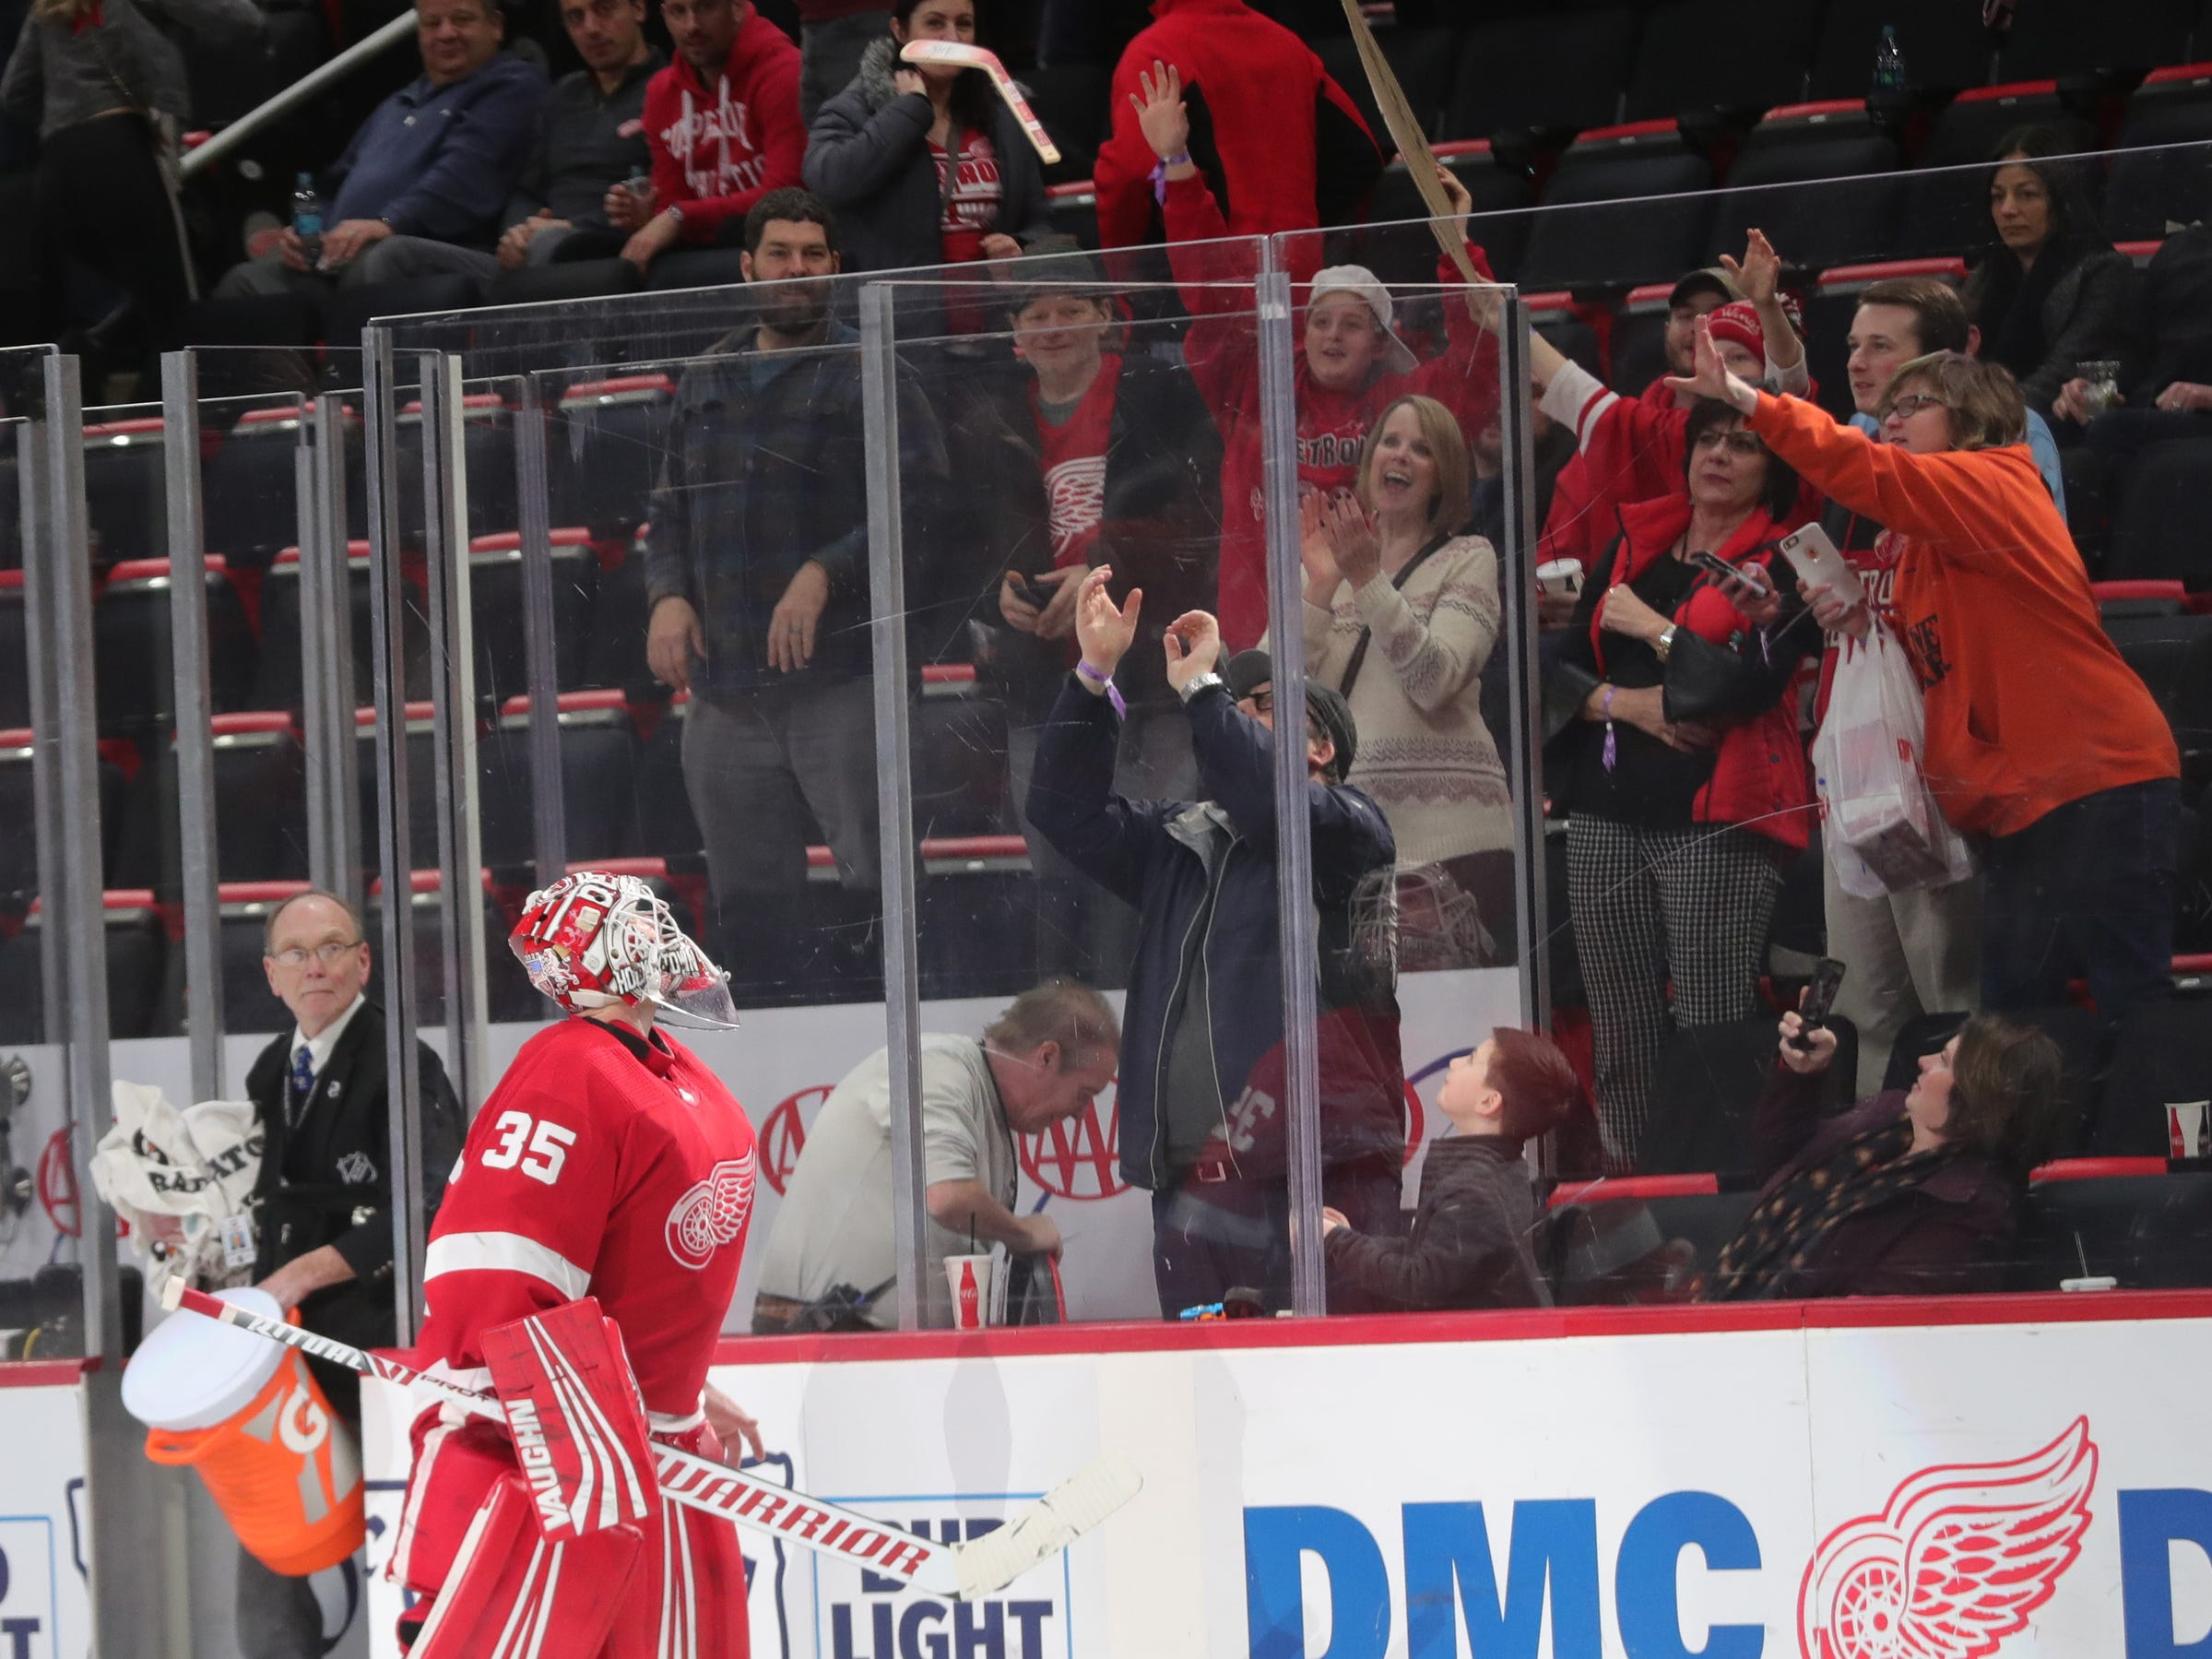 Detroit Red Wings goalie Jimmy Howard thows his stick into the crowd after completing his 500th career game Thursday, Feb. 14, 2019 at Little Caesars Arena in Detroit.